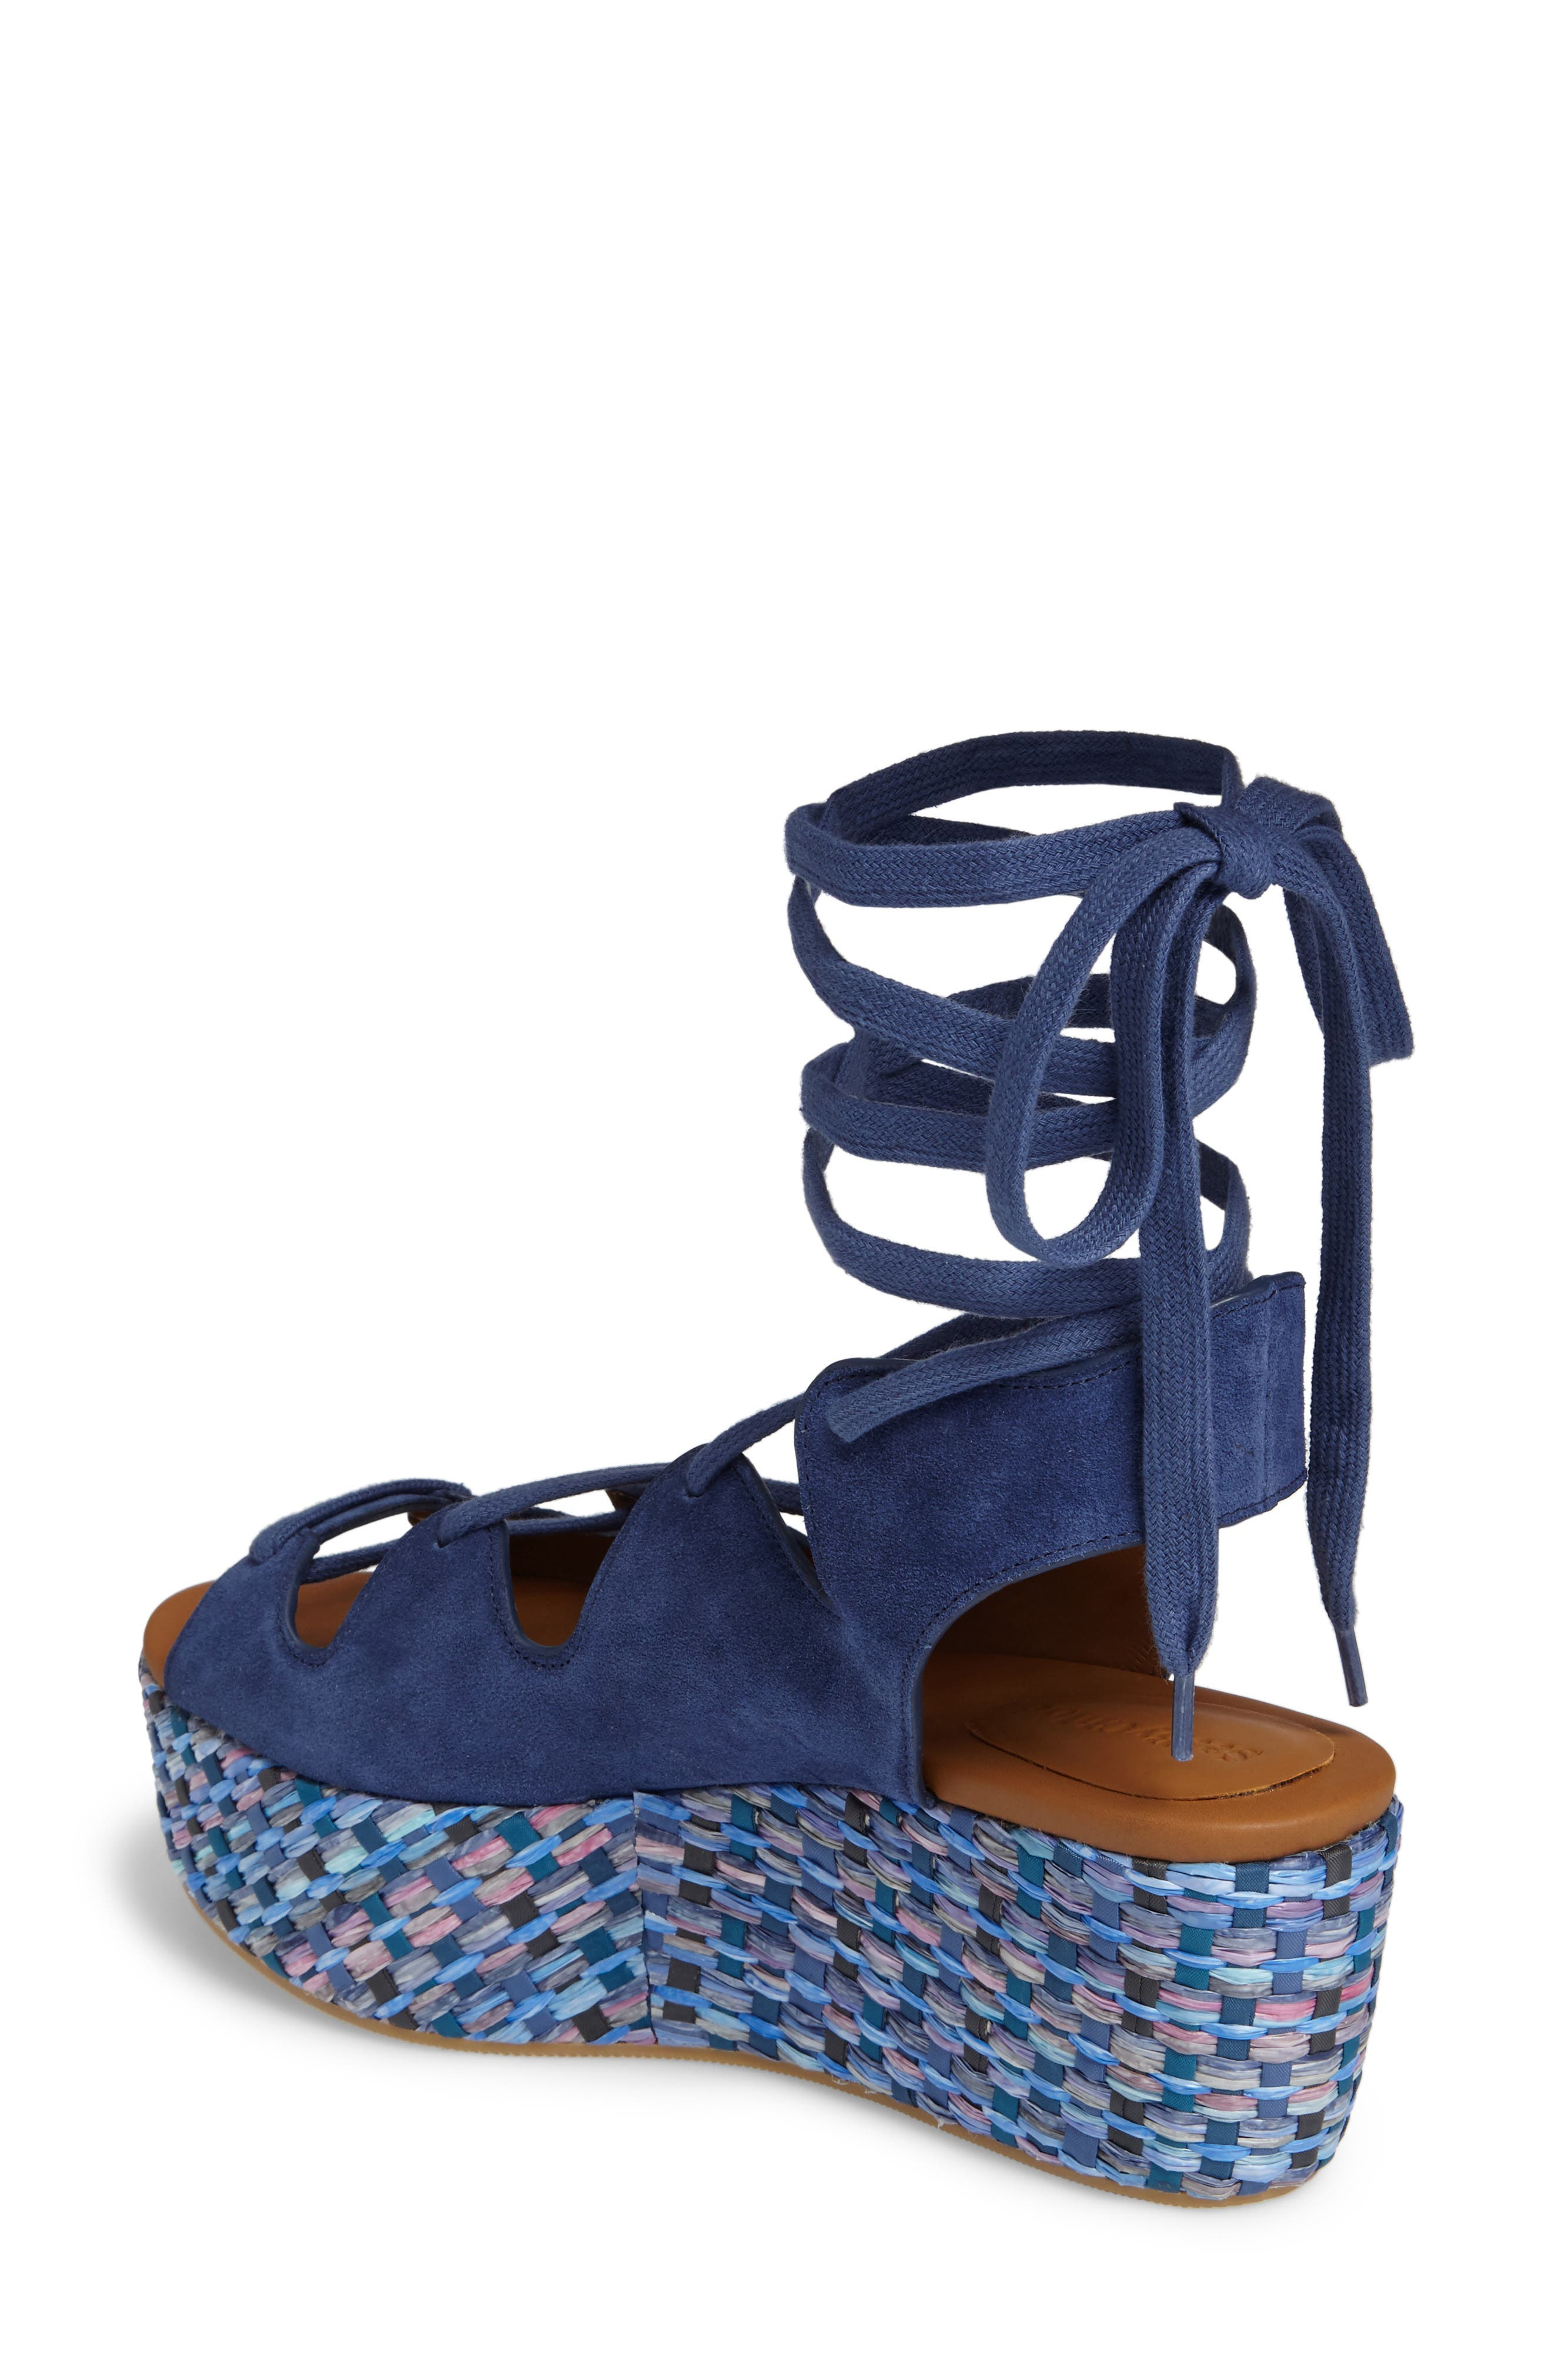 'Liana' Platform Wedge Sandal,                             Alternate thumbnail 2, color,                             Sugar